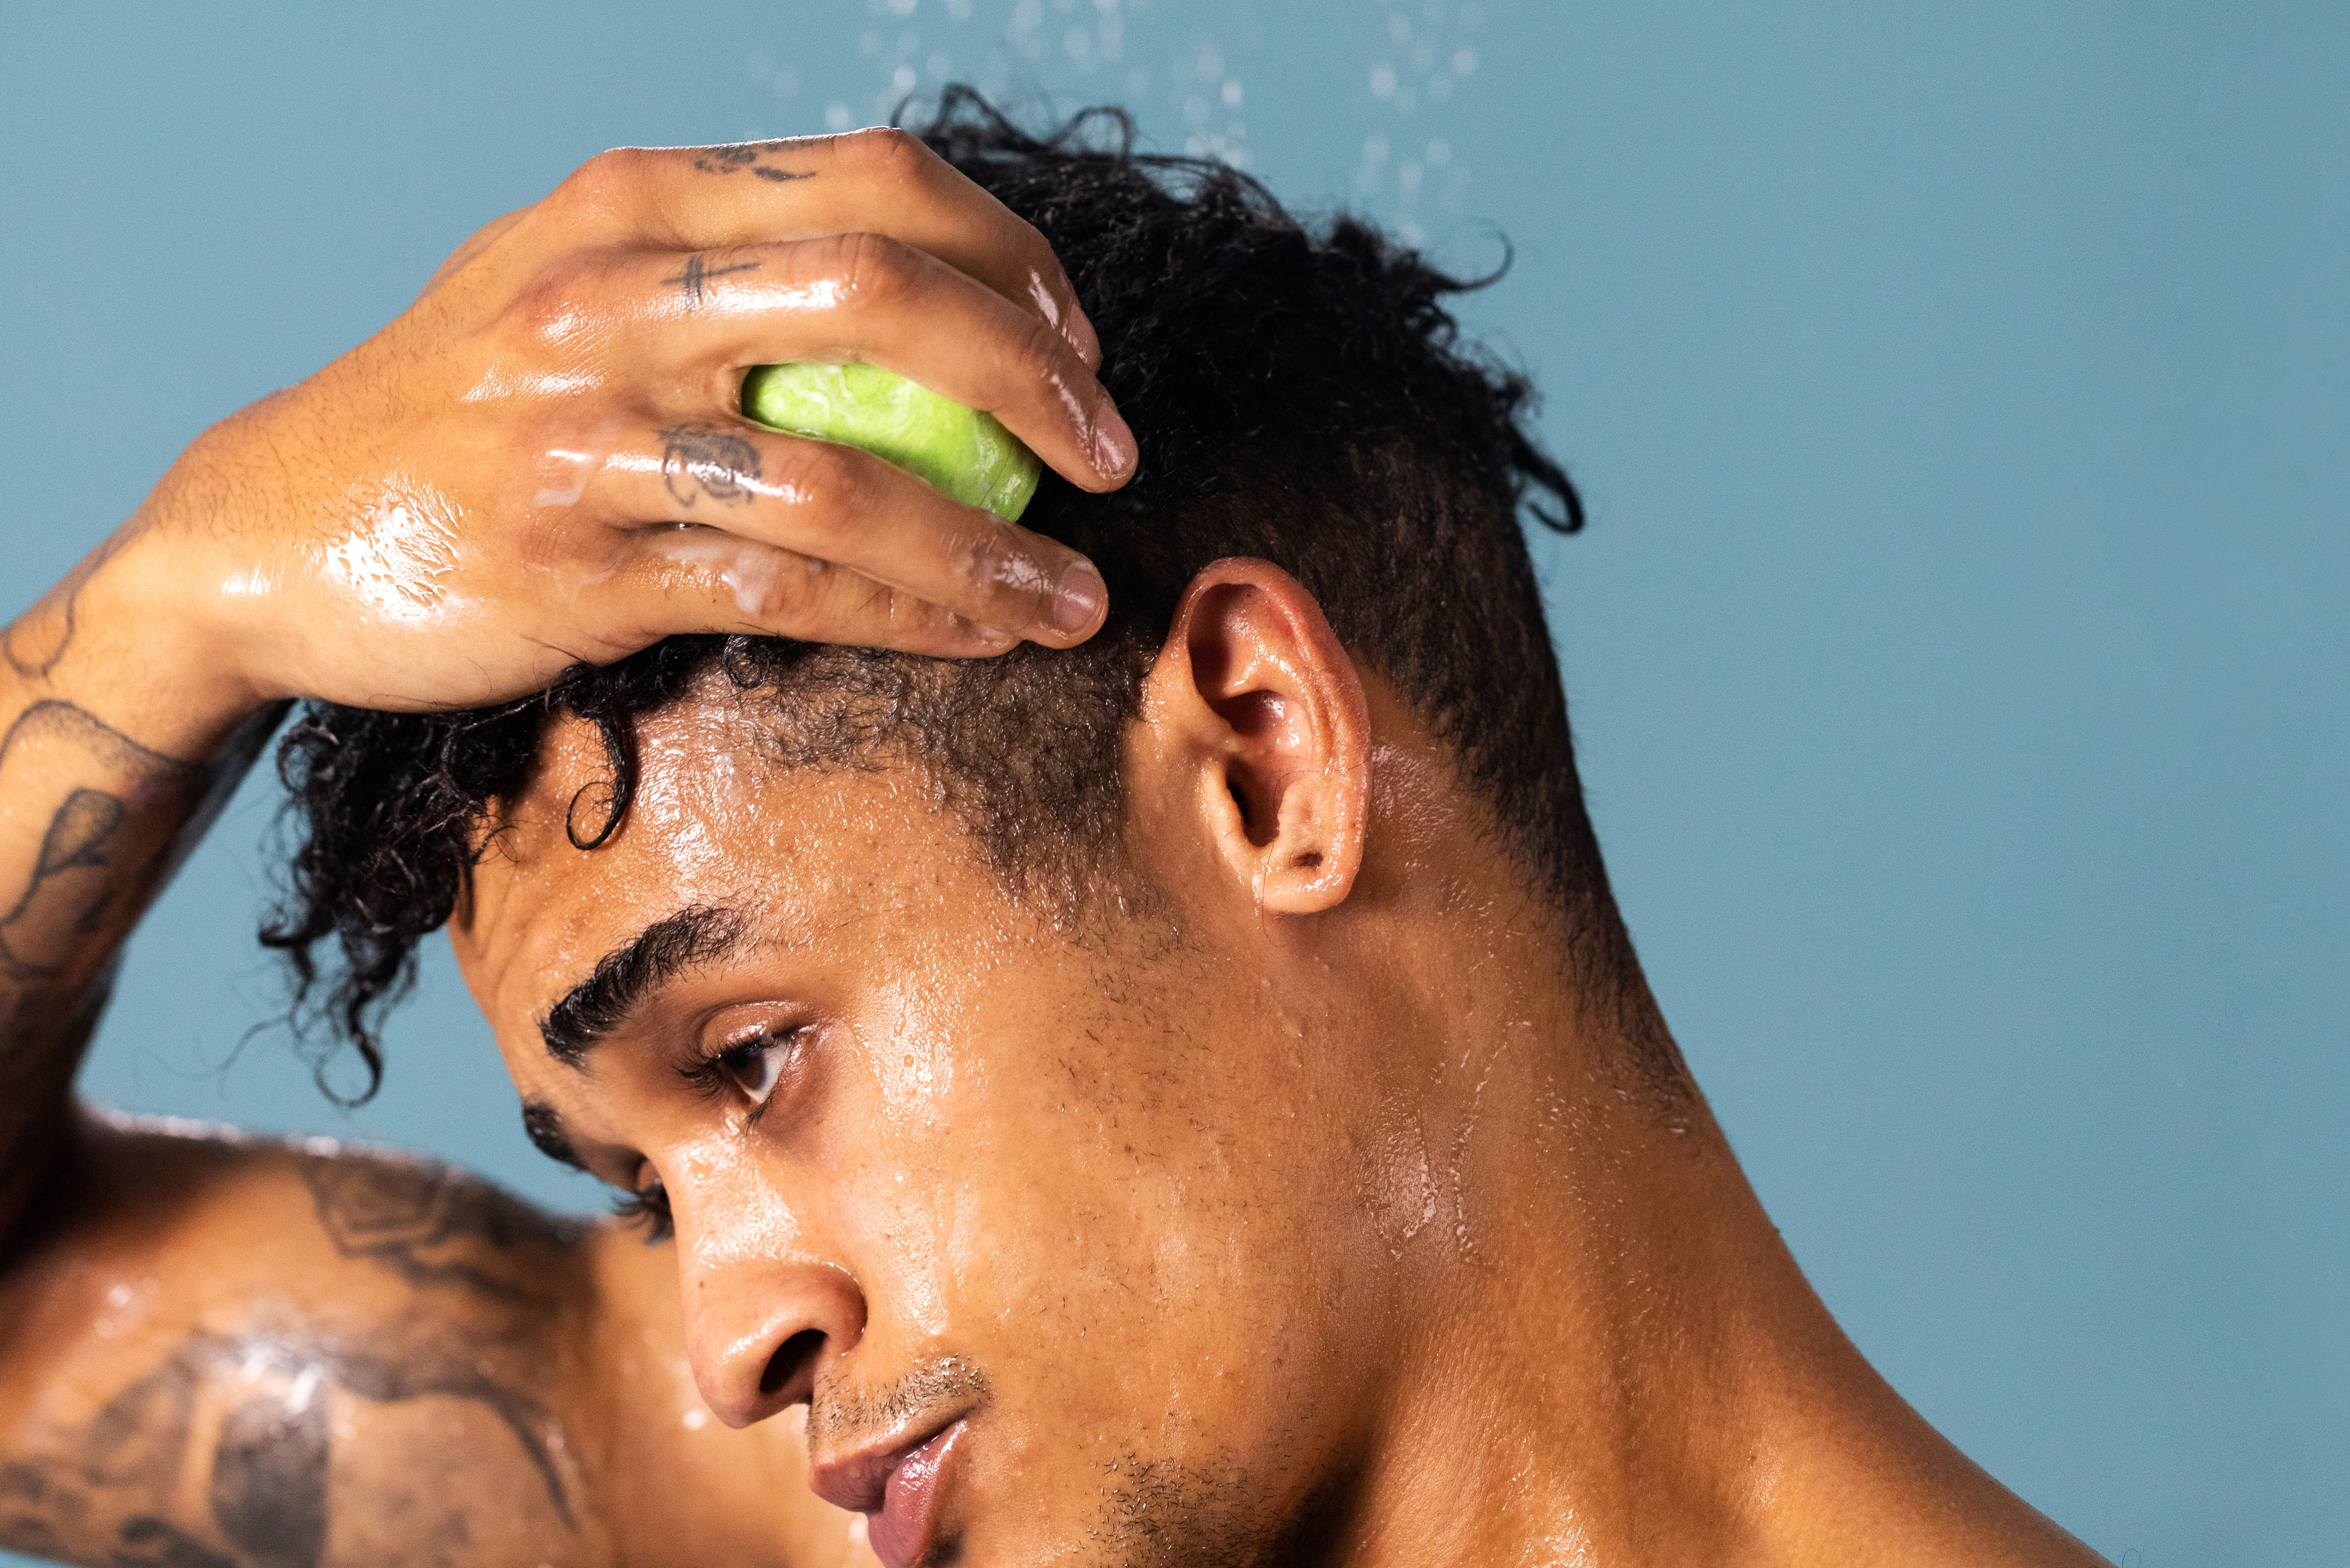 A person applies Jungle Pressed Conditioner to their hair.